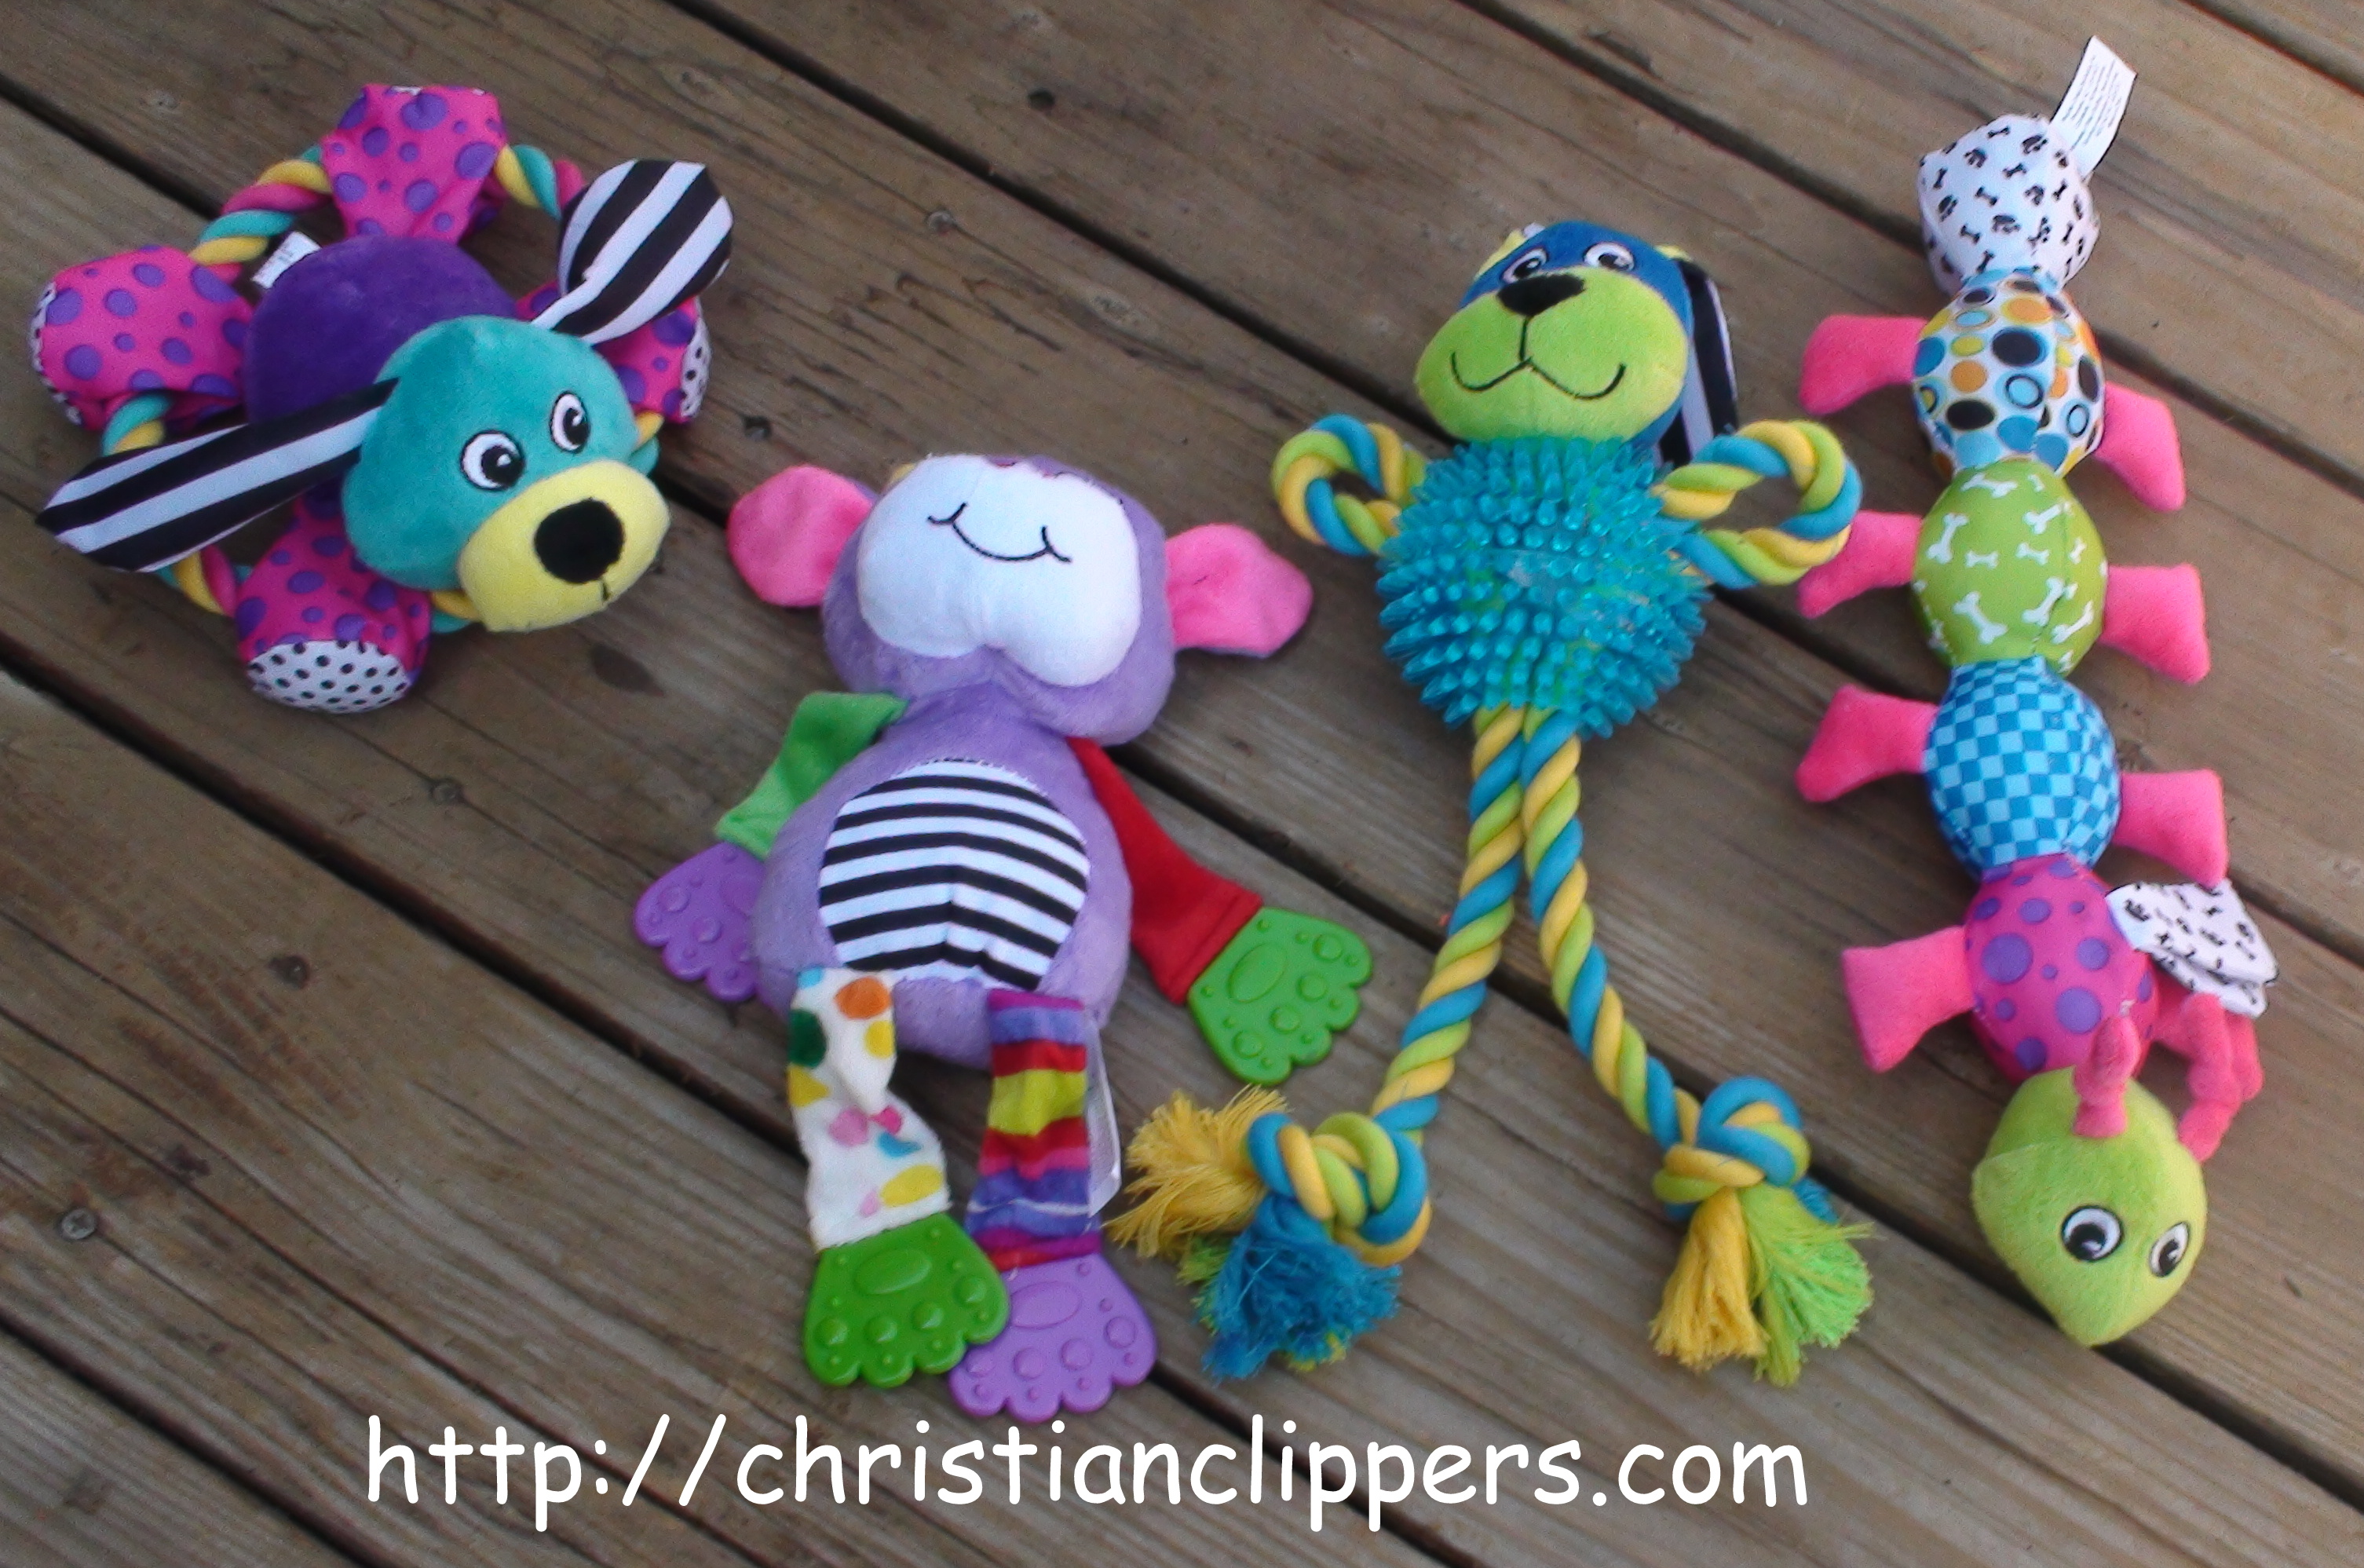 june 2012 christian clippers